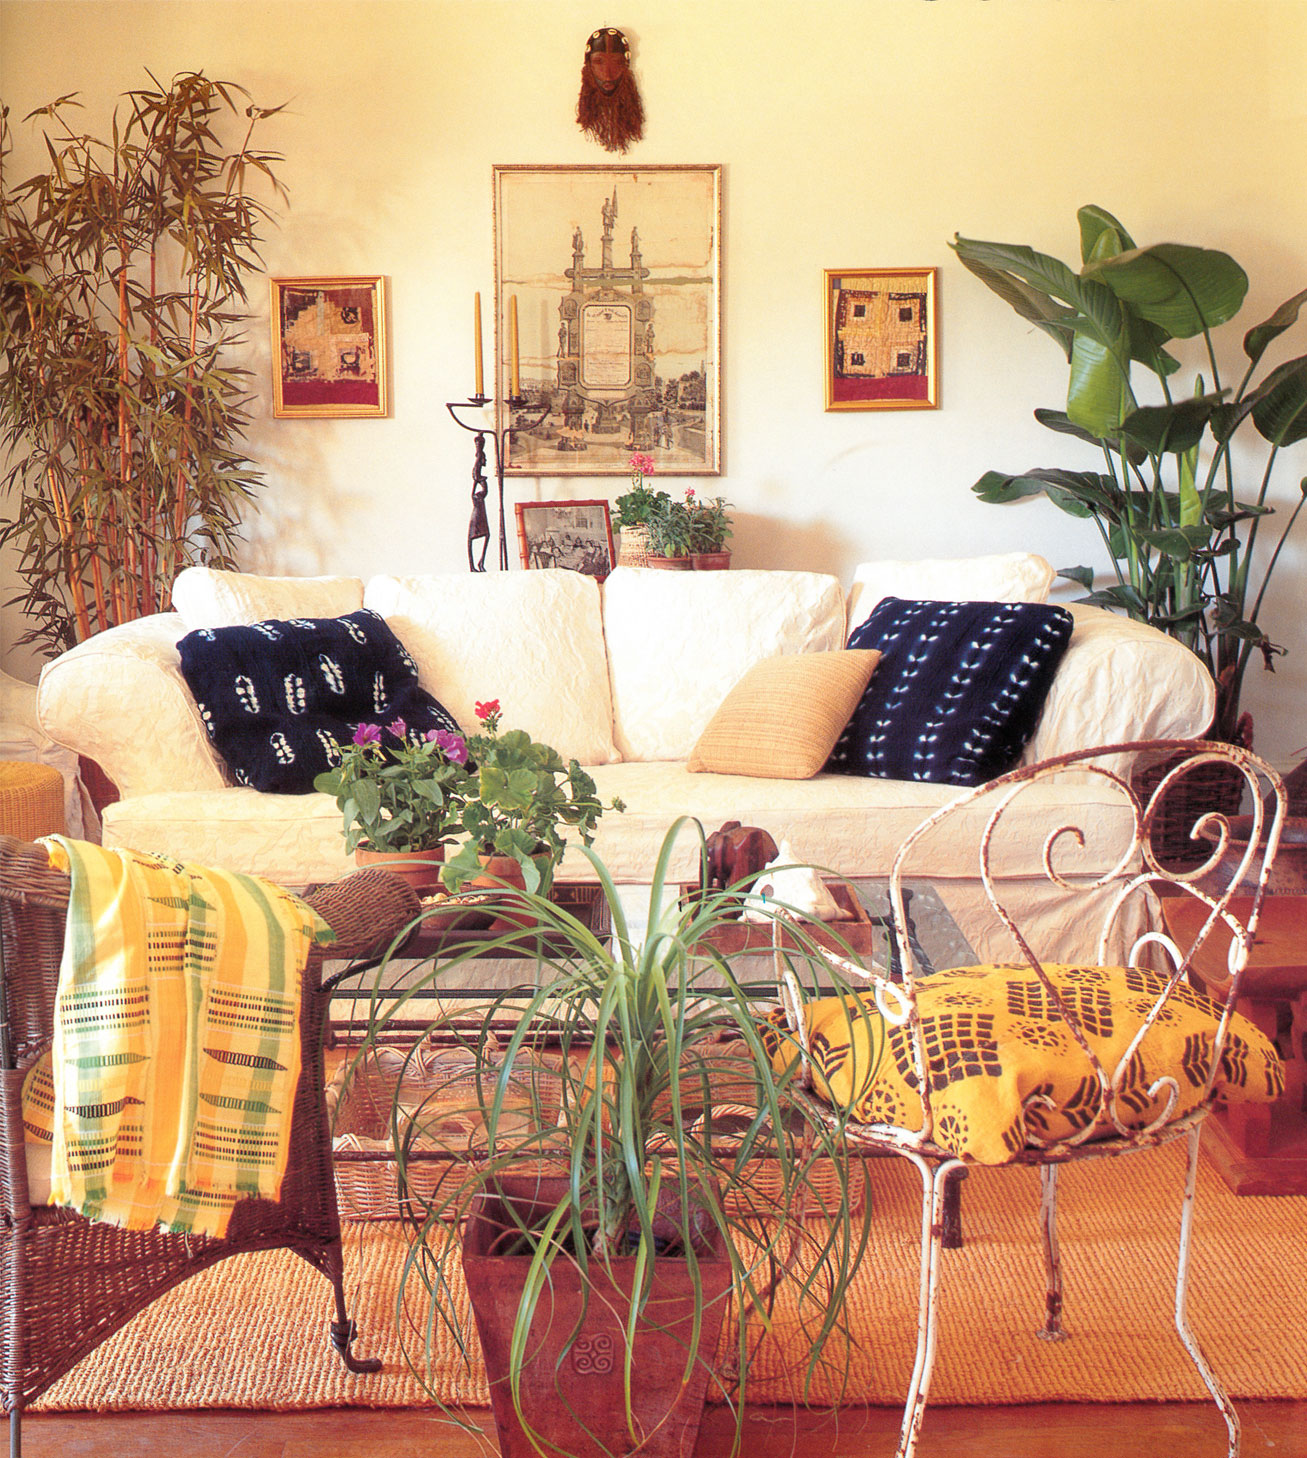 African Decorating The: Apartmentf15: Decorating With African Masks-2